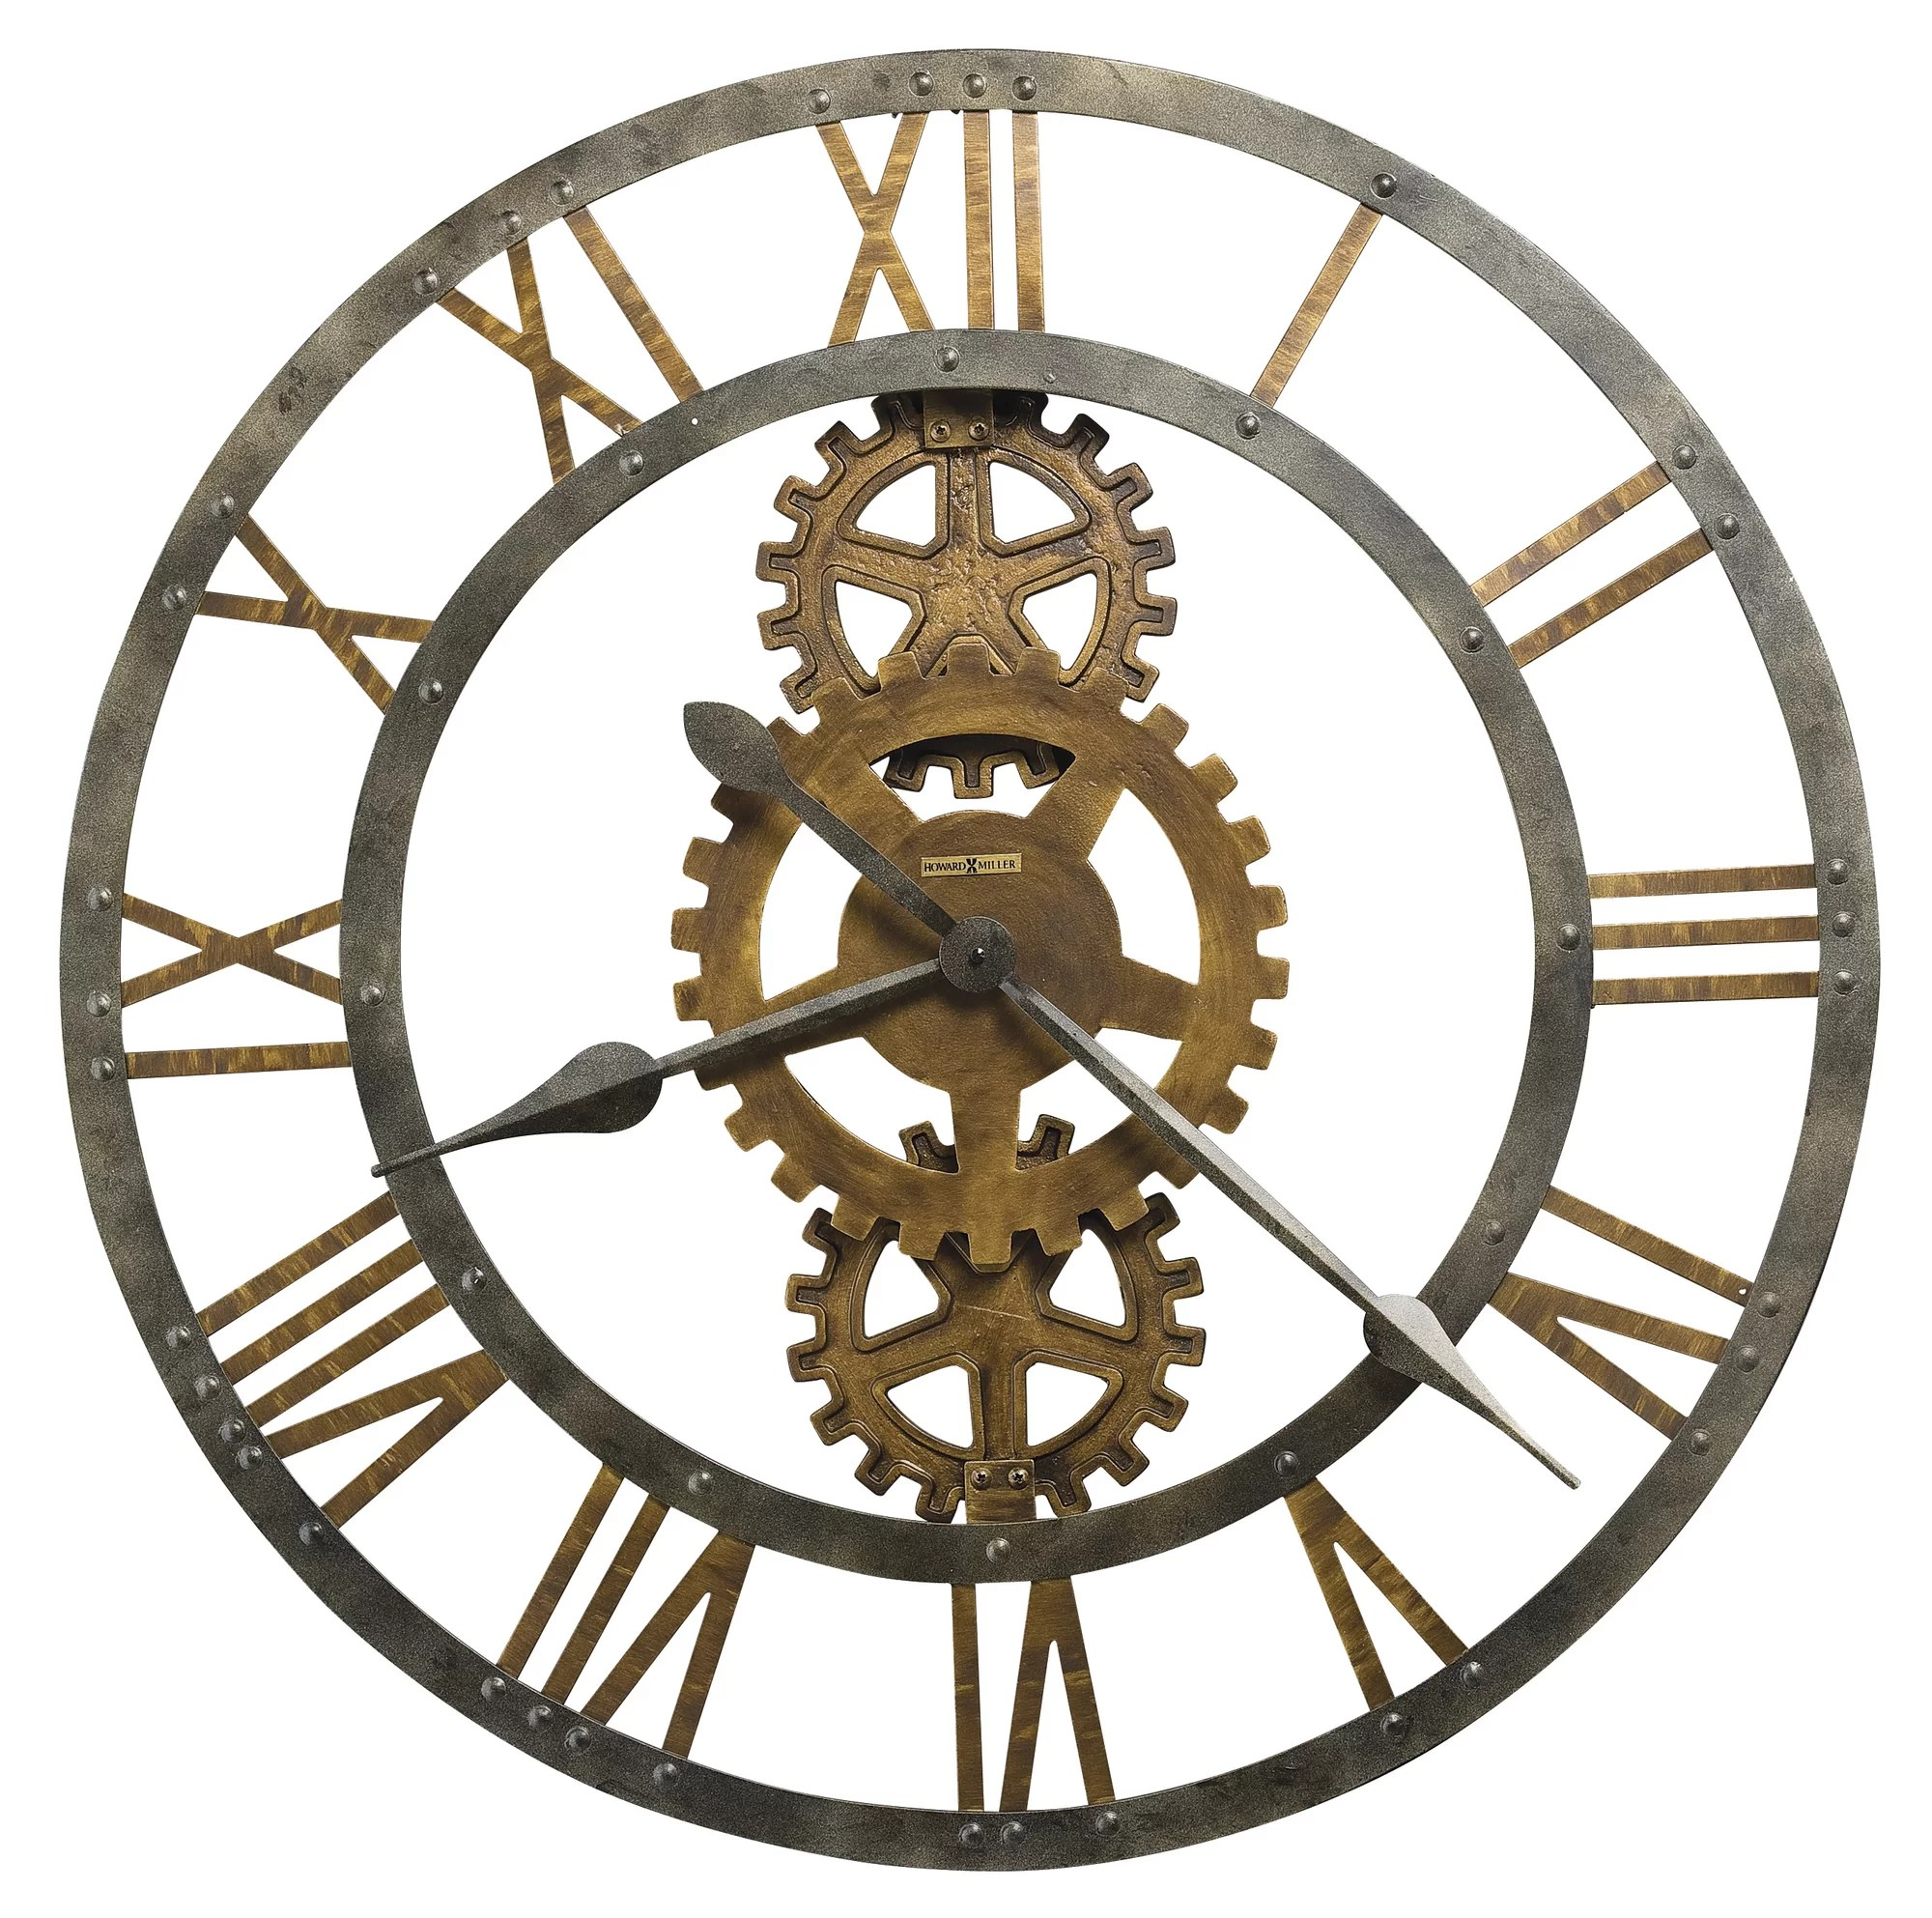 Big Clocks For Wall Large Wall Clocks Oversized Up To 60 Inches